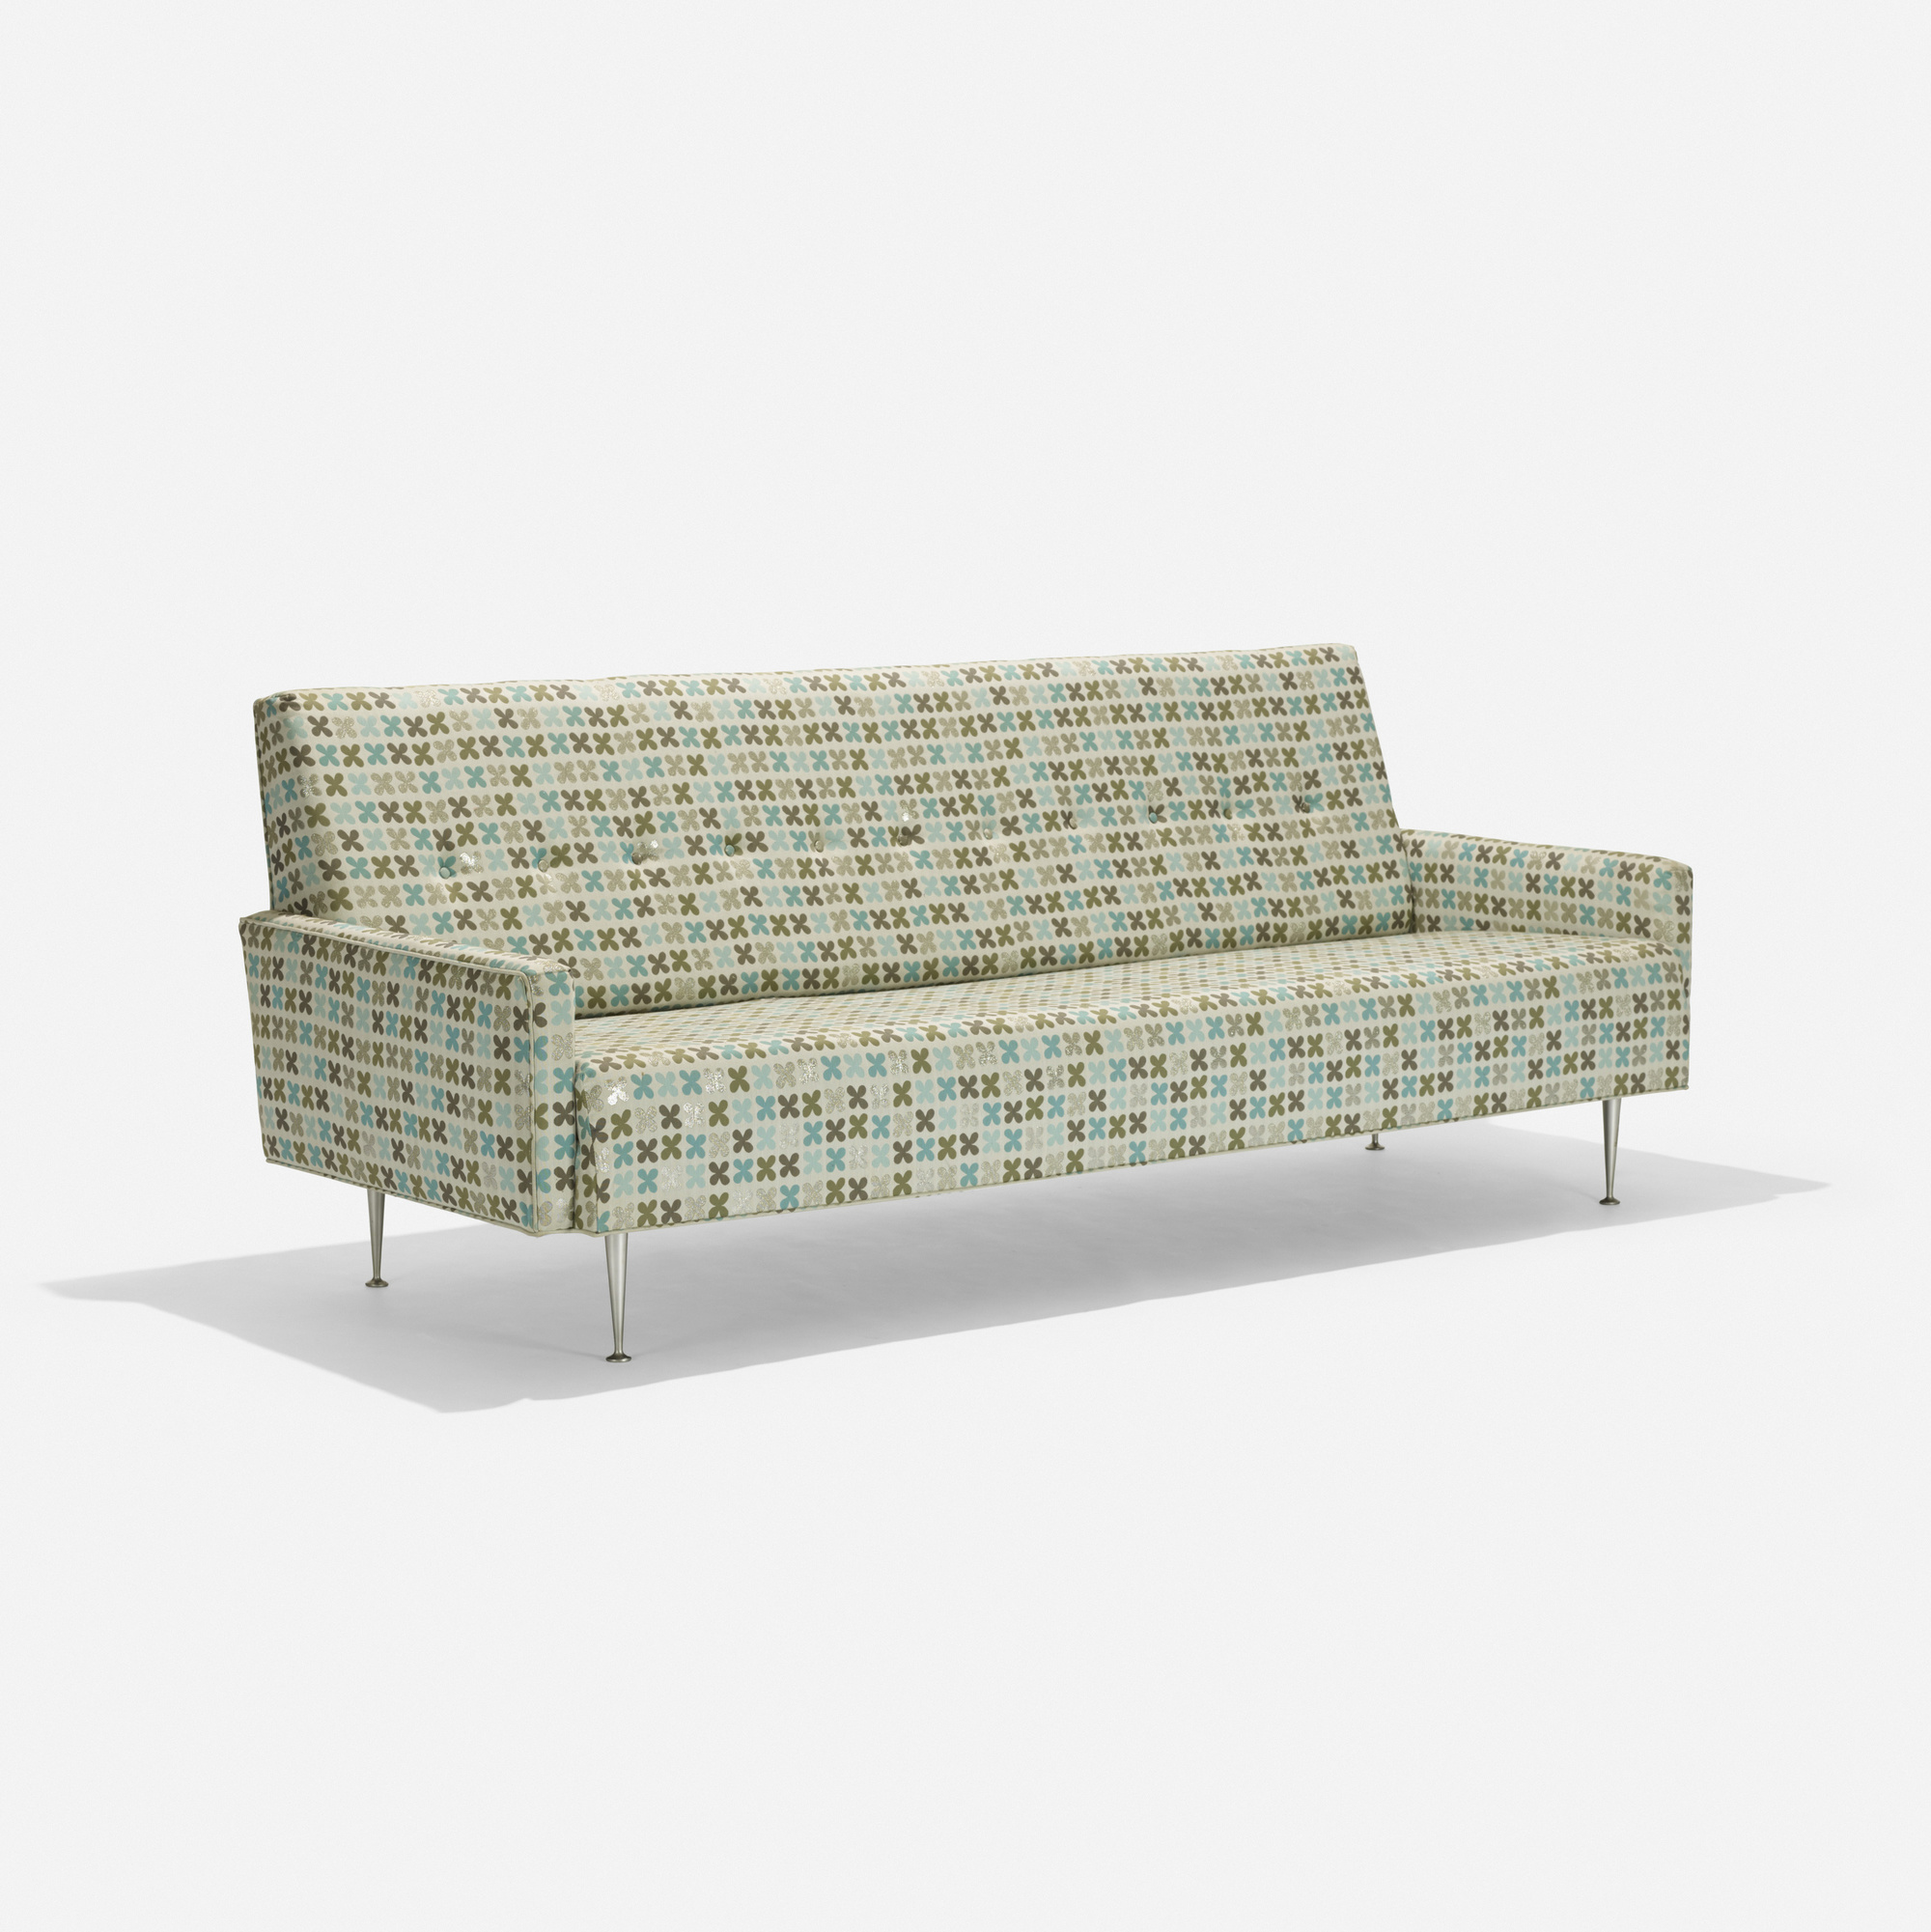 107: George Nelson & Associates / sofa, model 5486 (1 of 2)